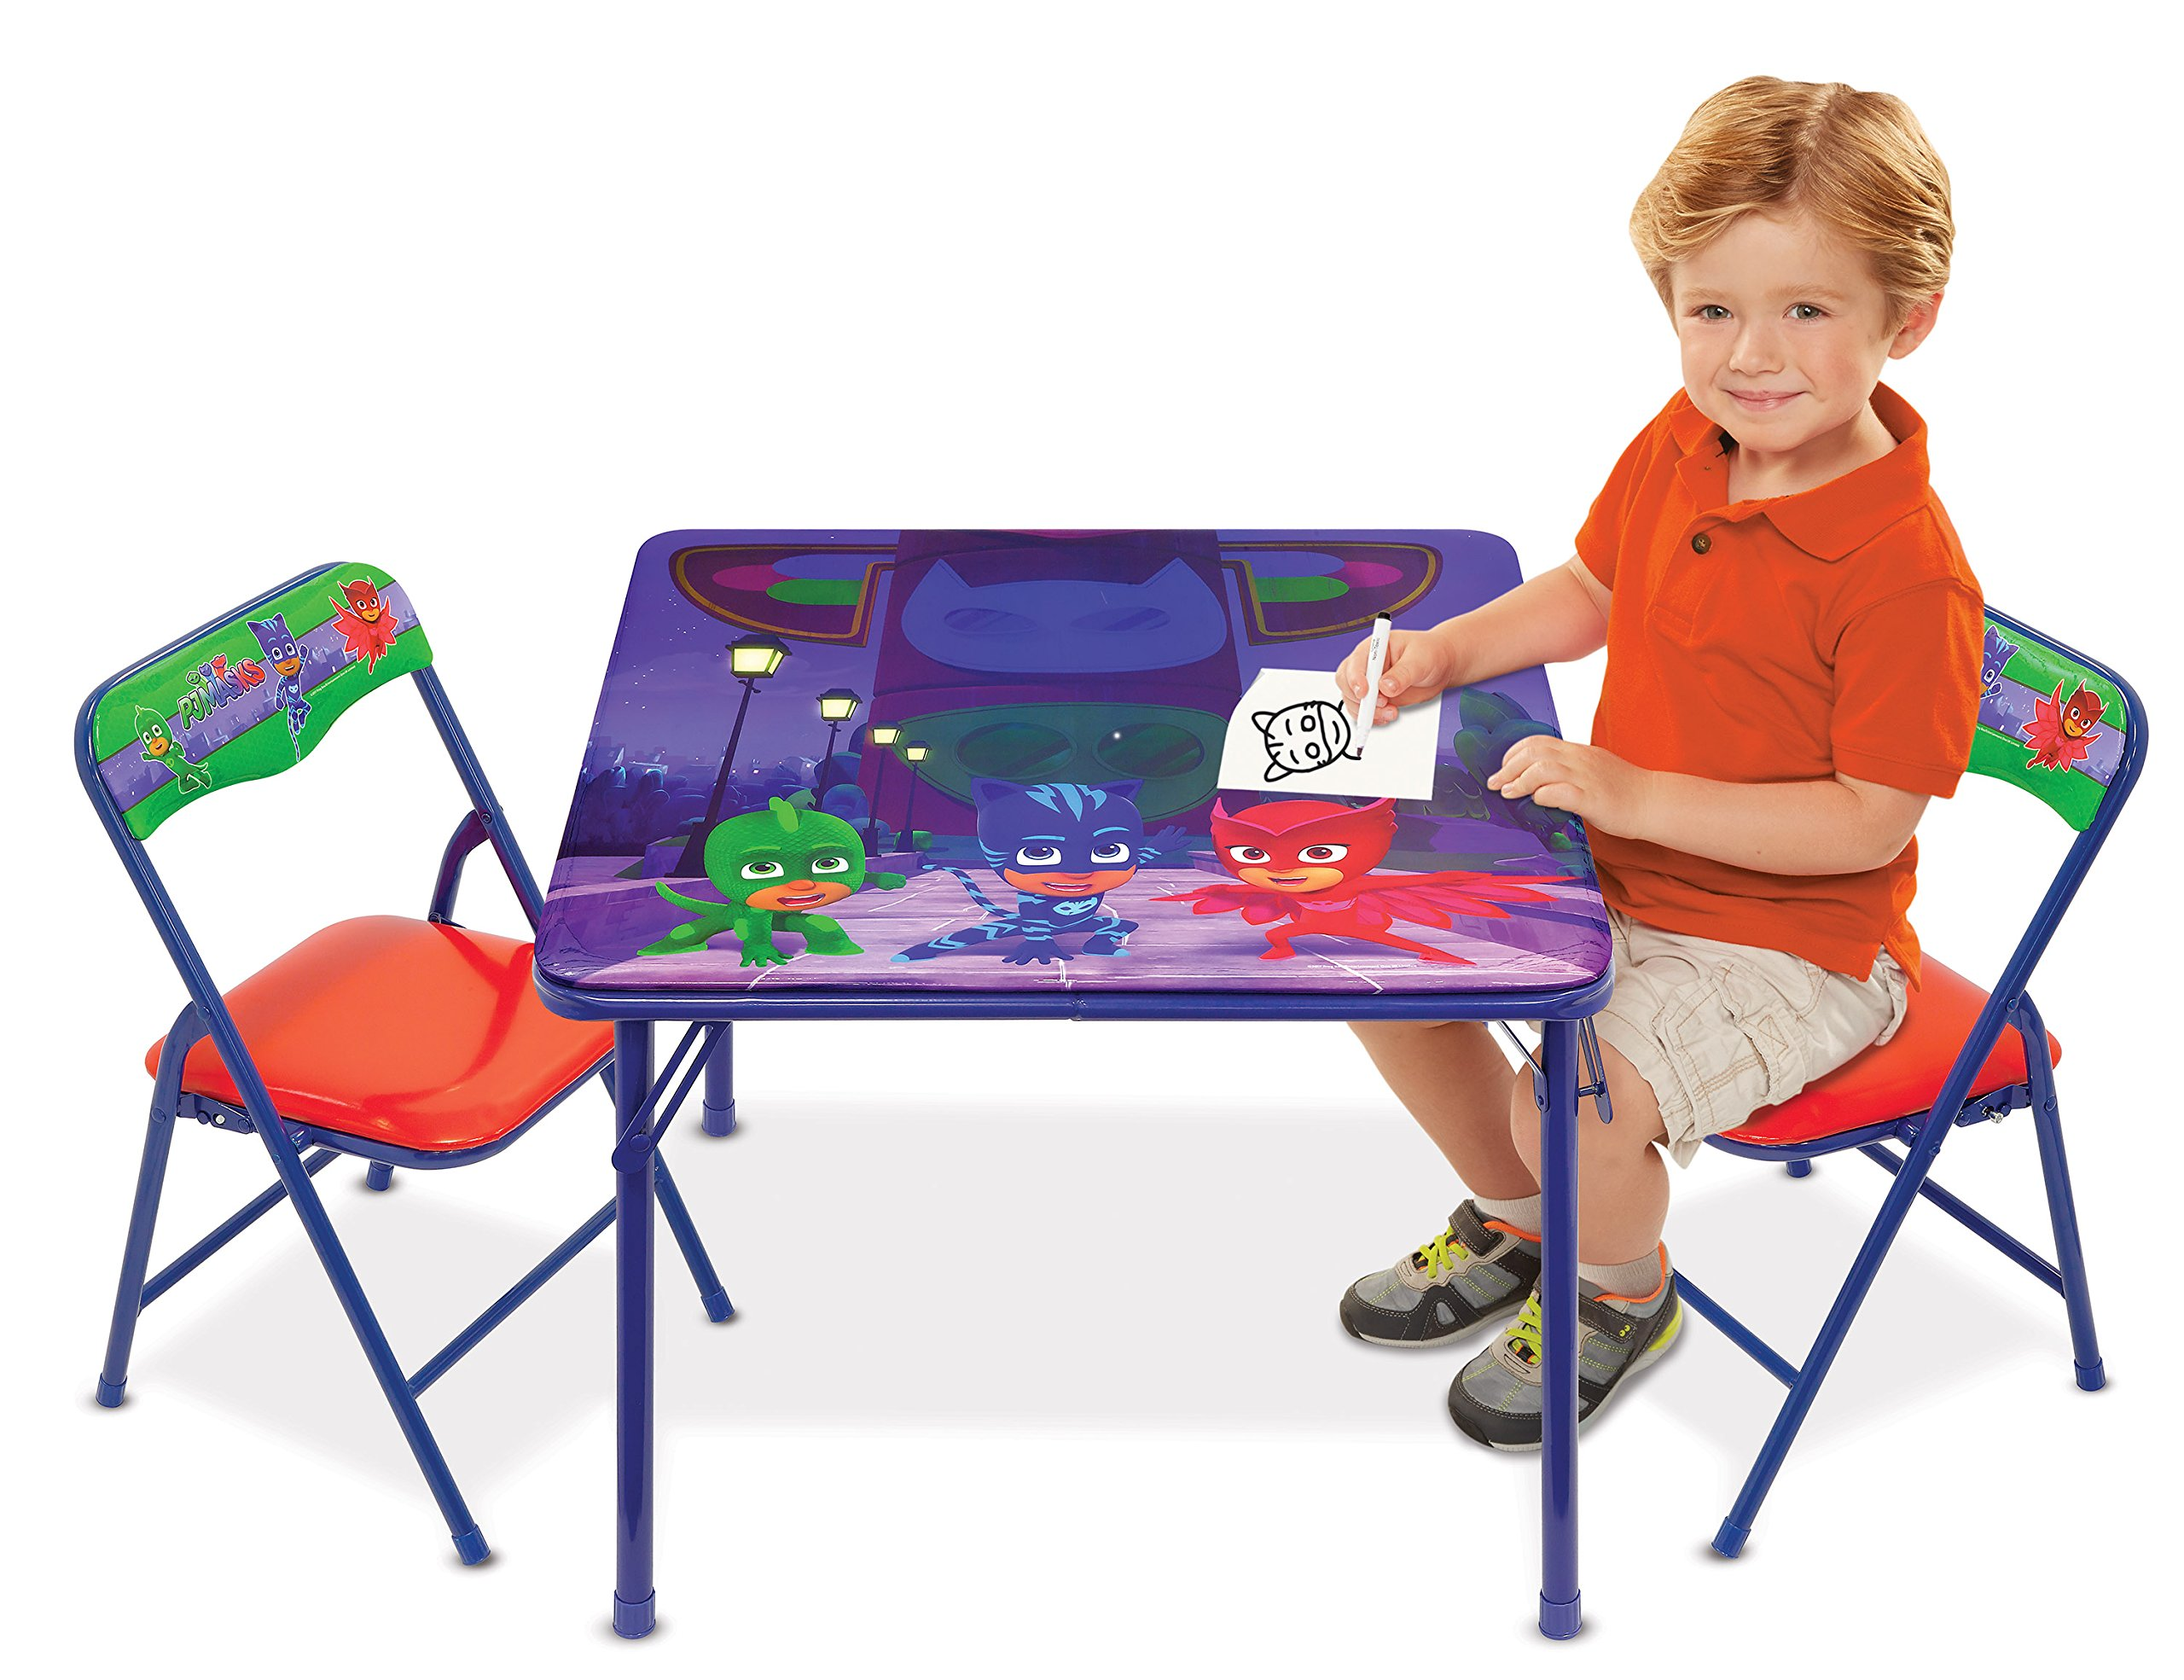 PJ Masks Superhero Team Activity Table Set with 2 Chairs Play Two